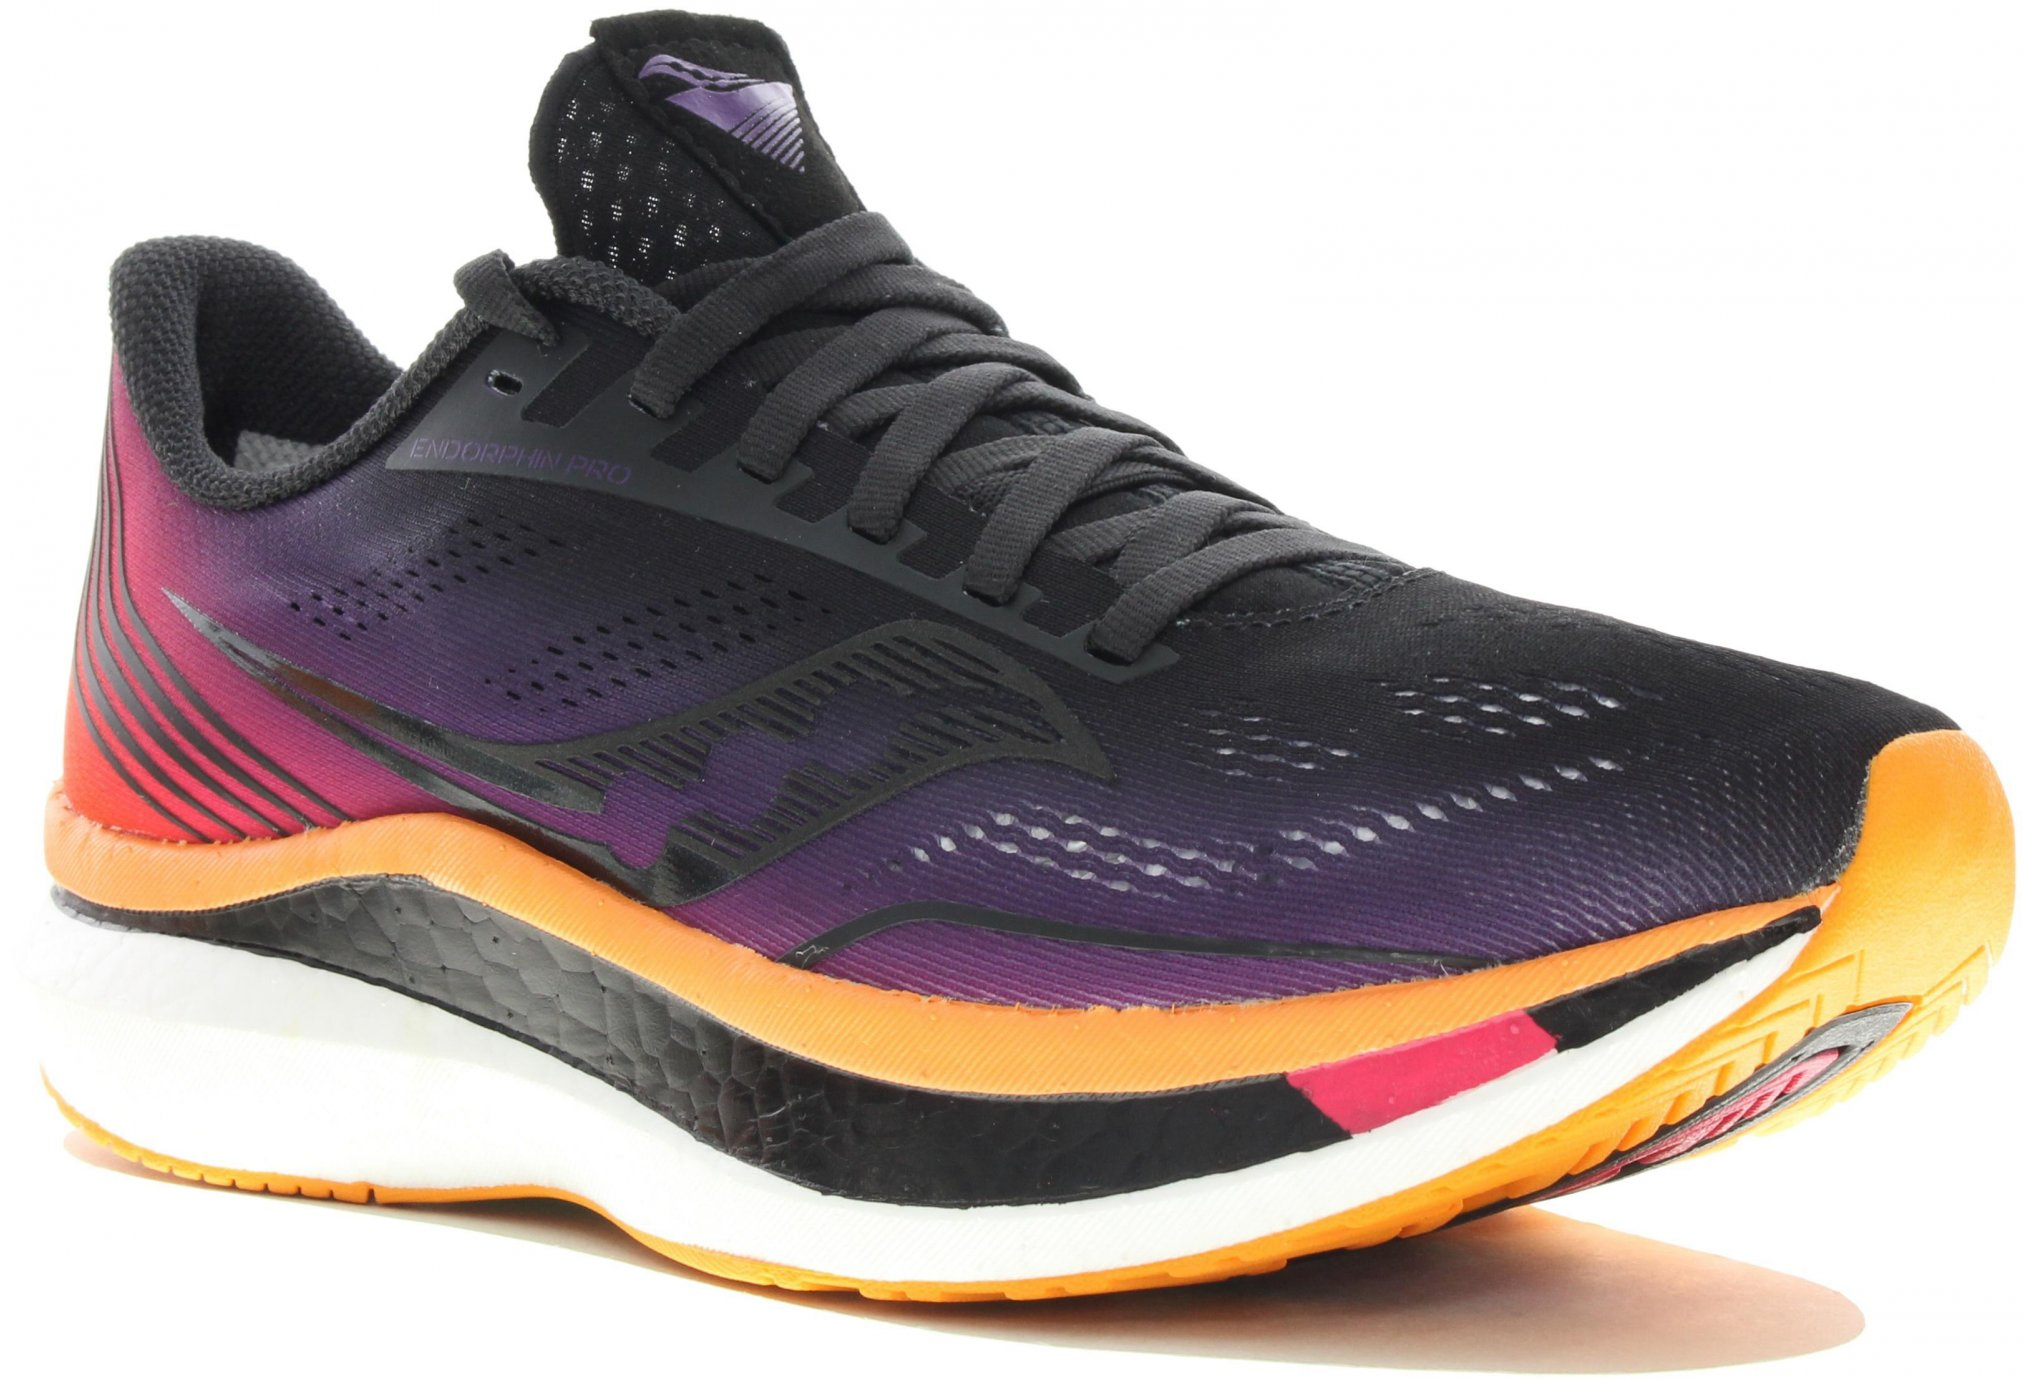 Saucony Endorphin Pro Sunset Fade W Chaussures running femme